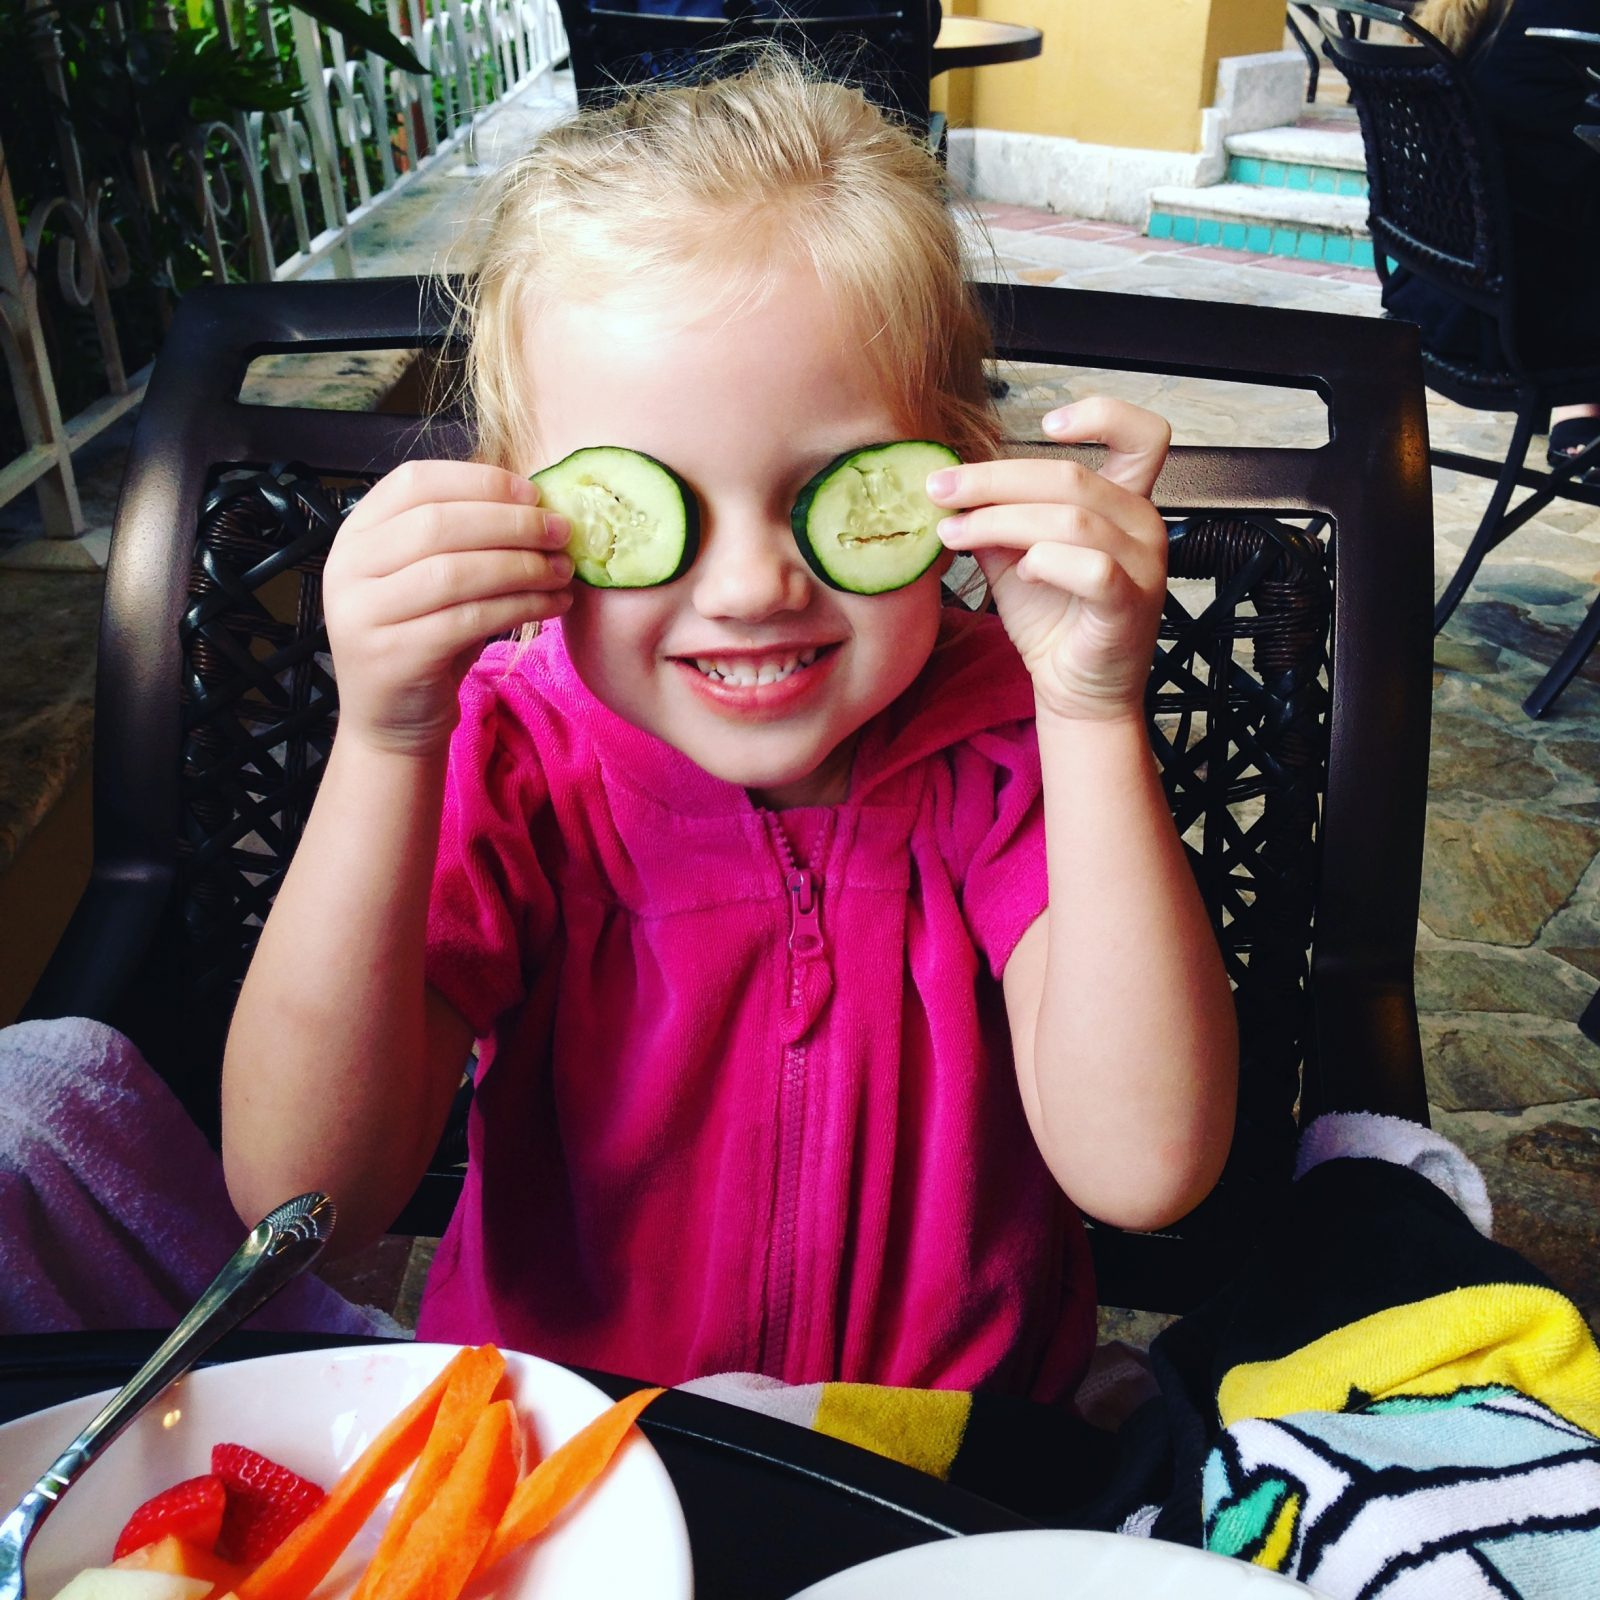 little girl playing with cucumbers over her eyes